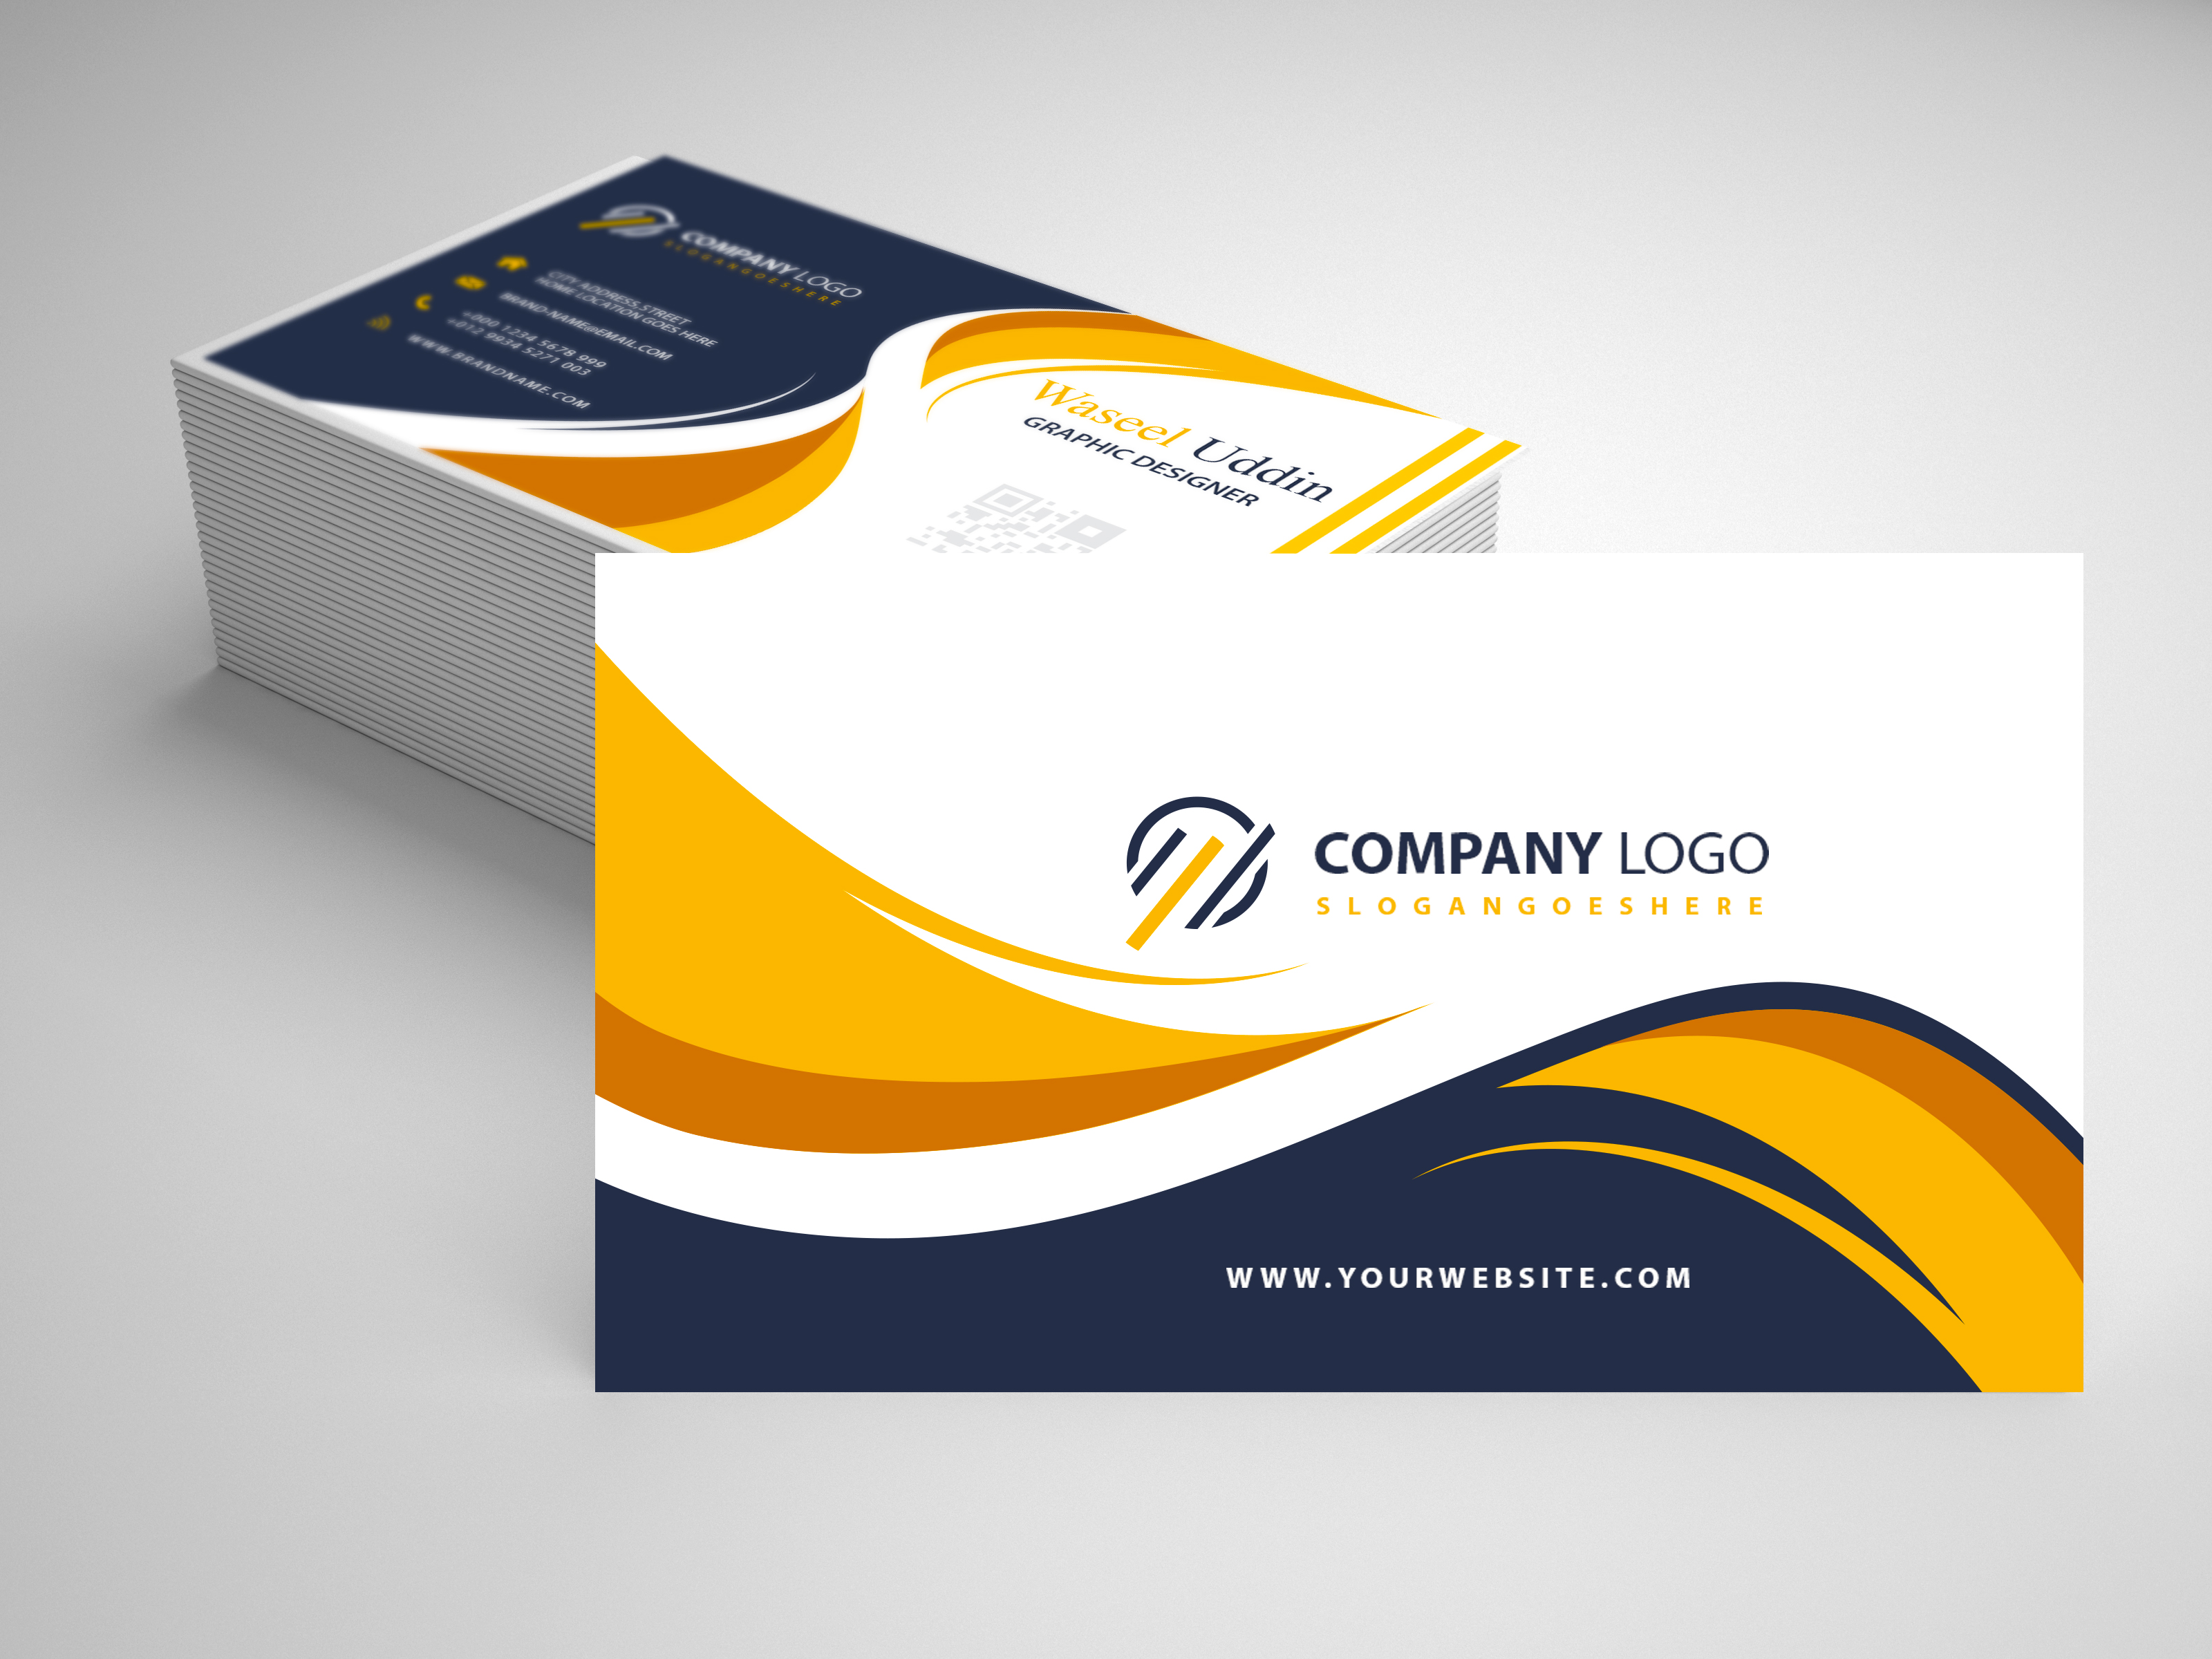 Design A Professional Business Card.